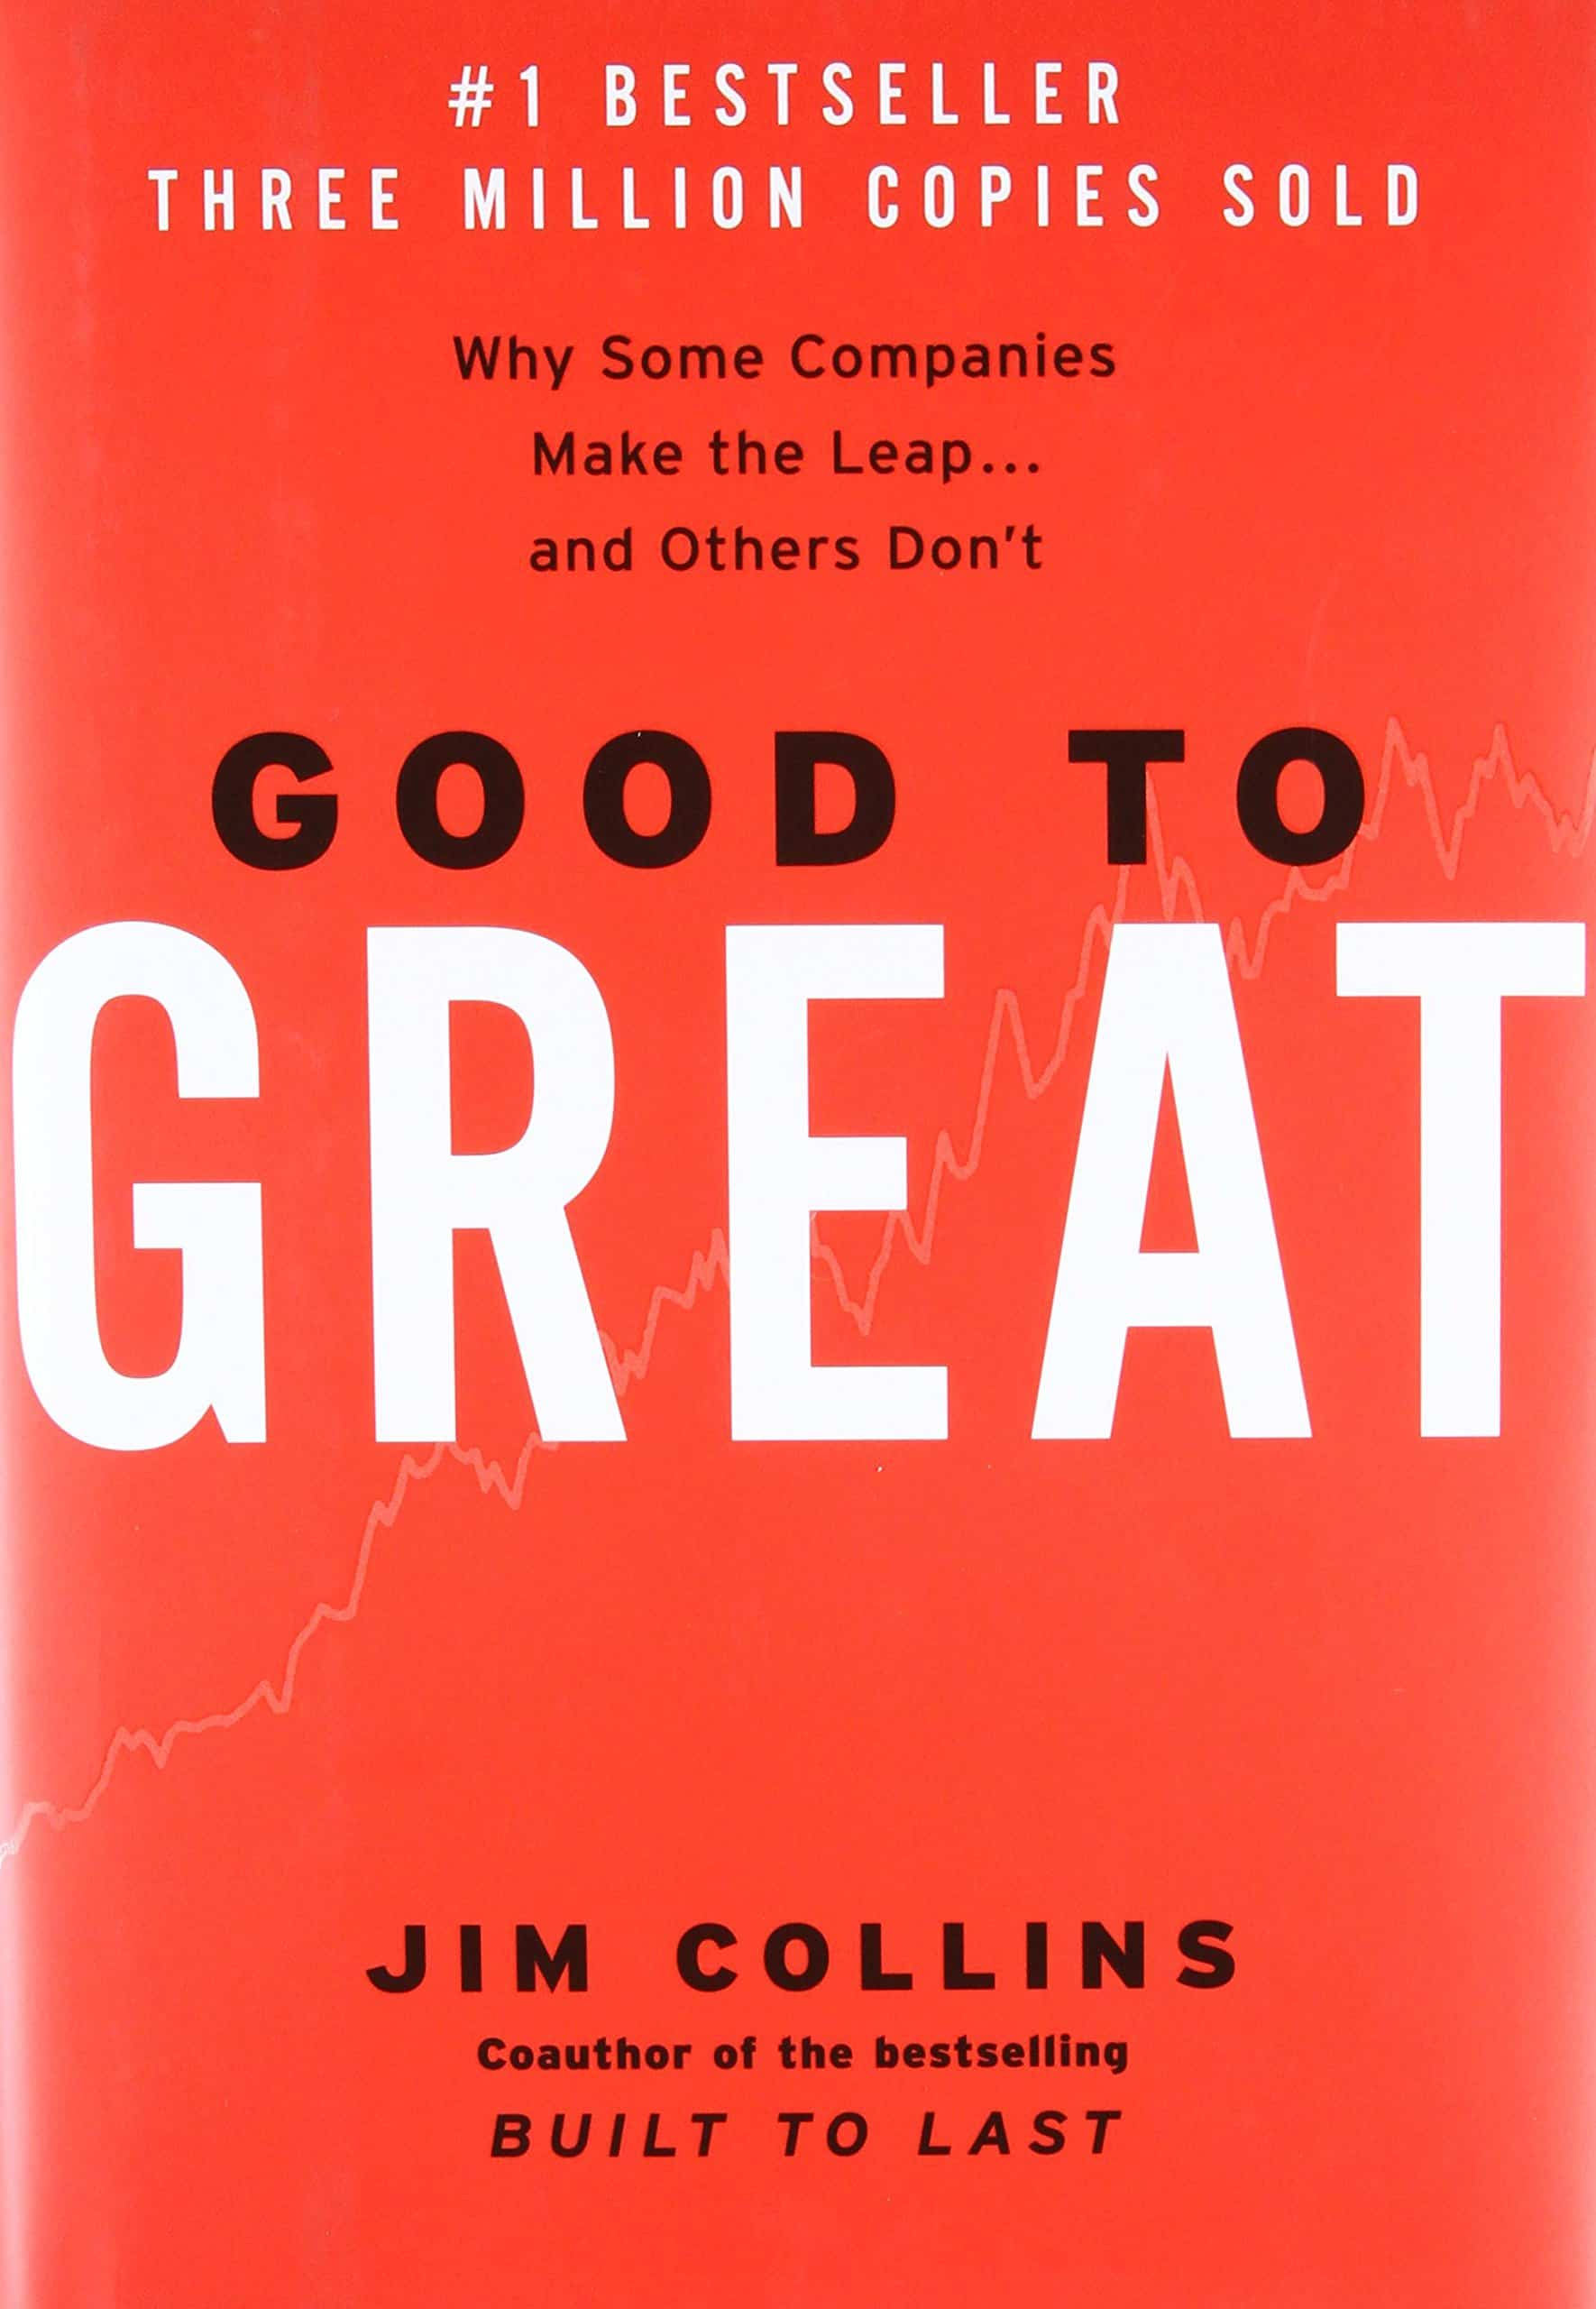 The cover of Good to Great